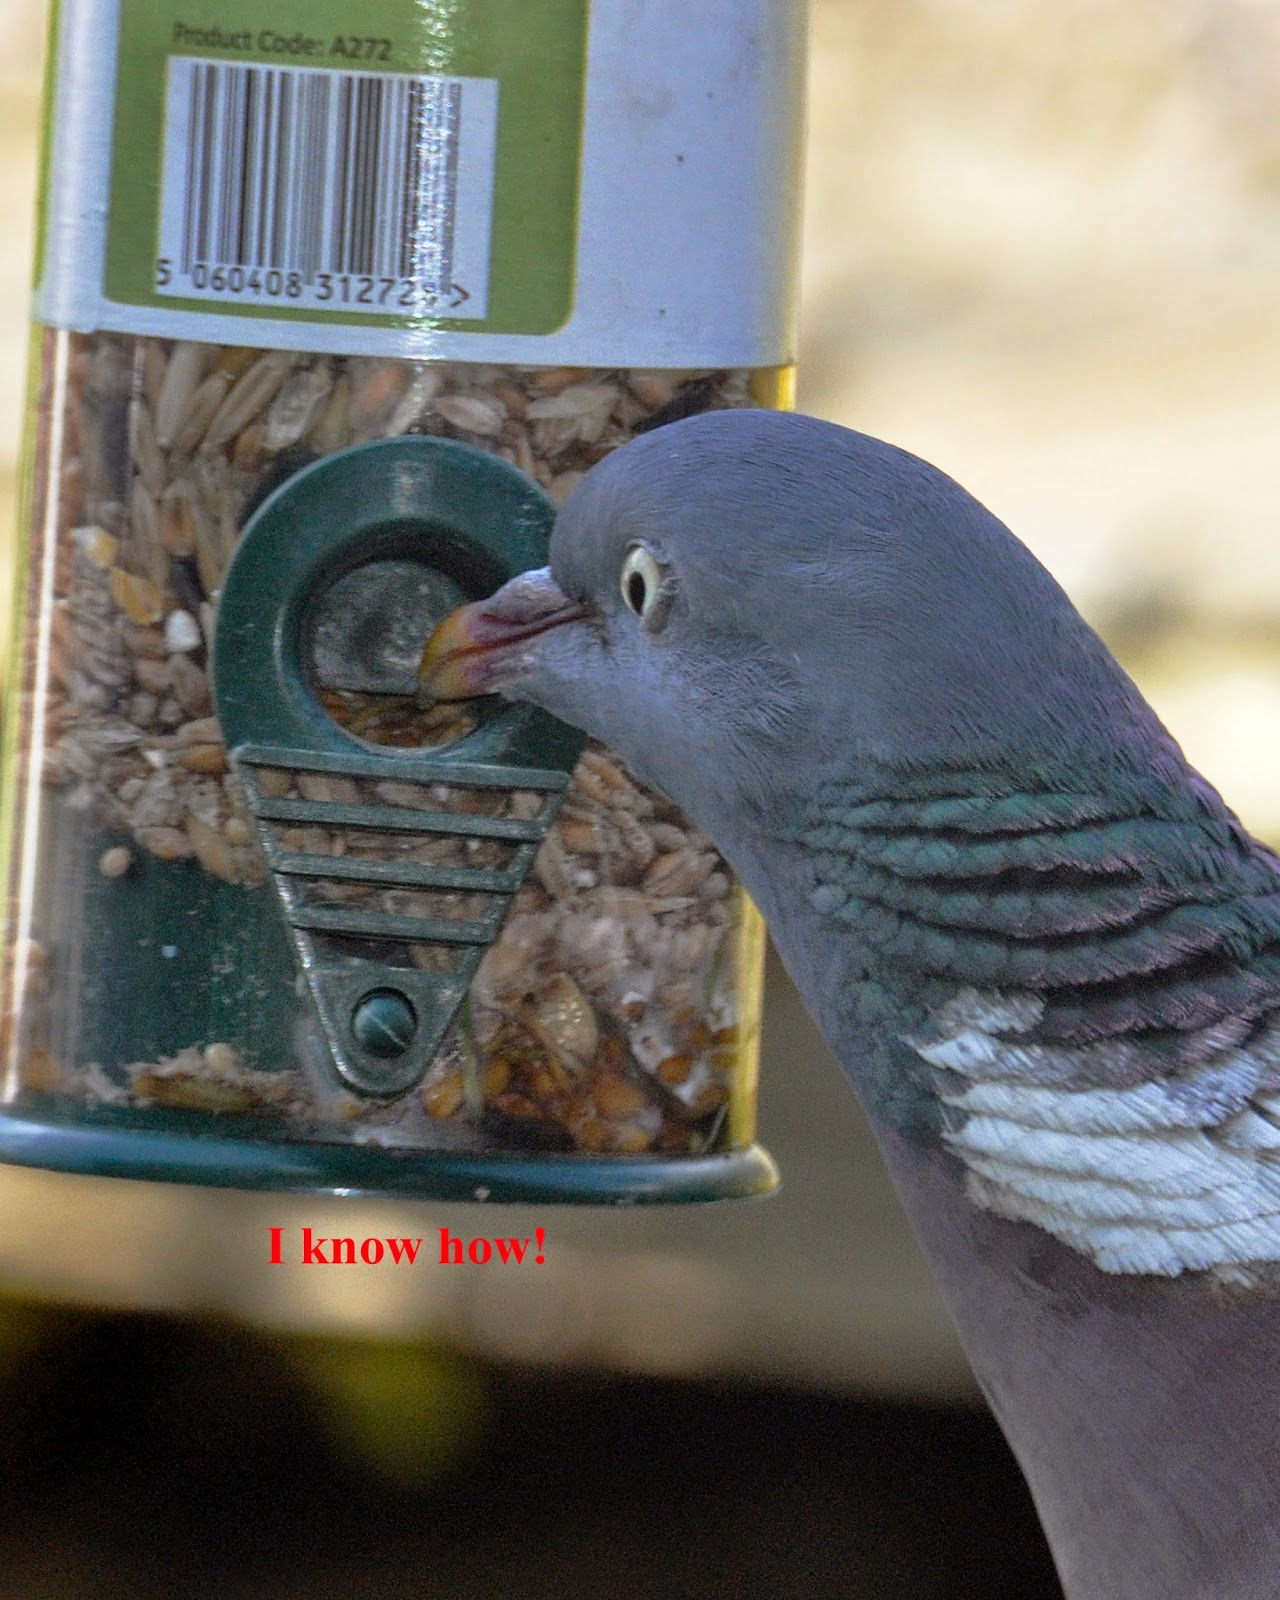 Pigeon at bird feeder